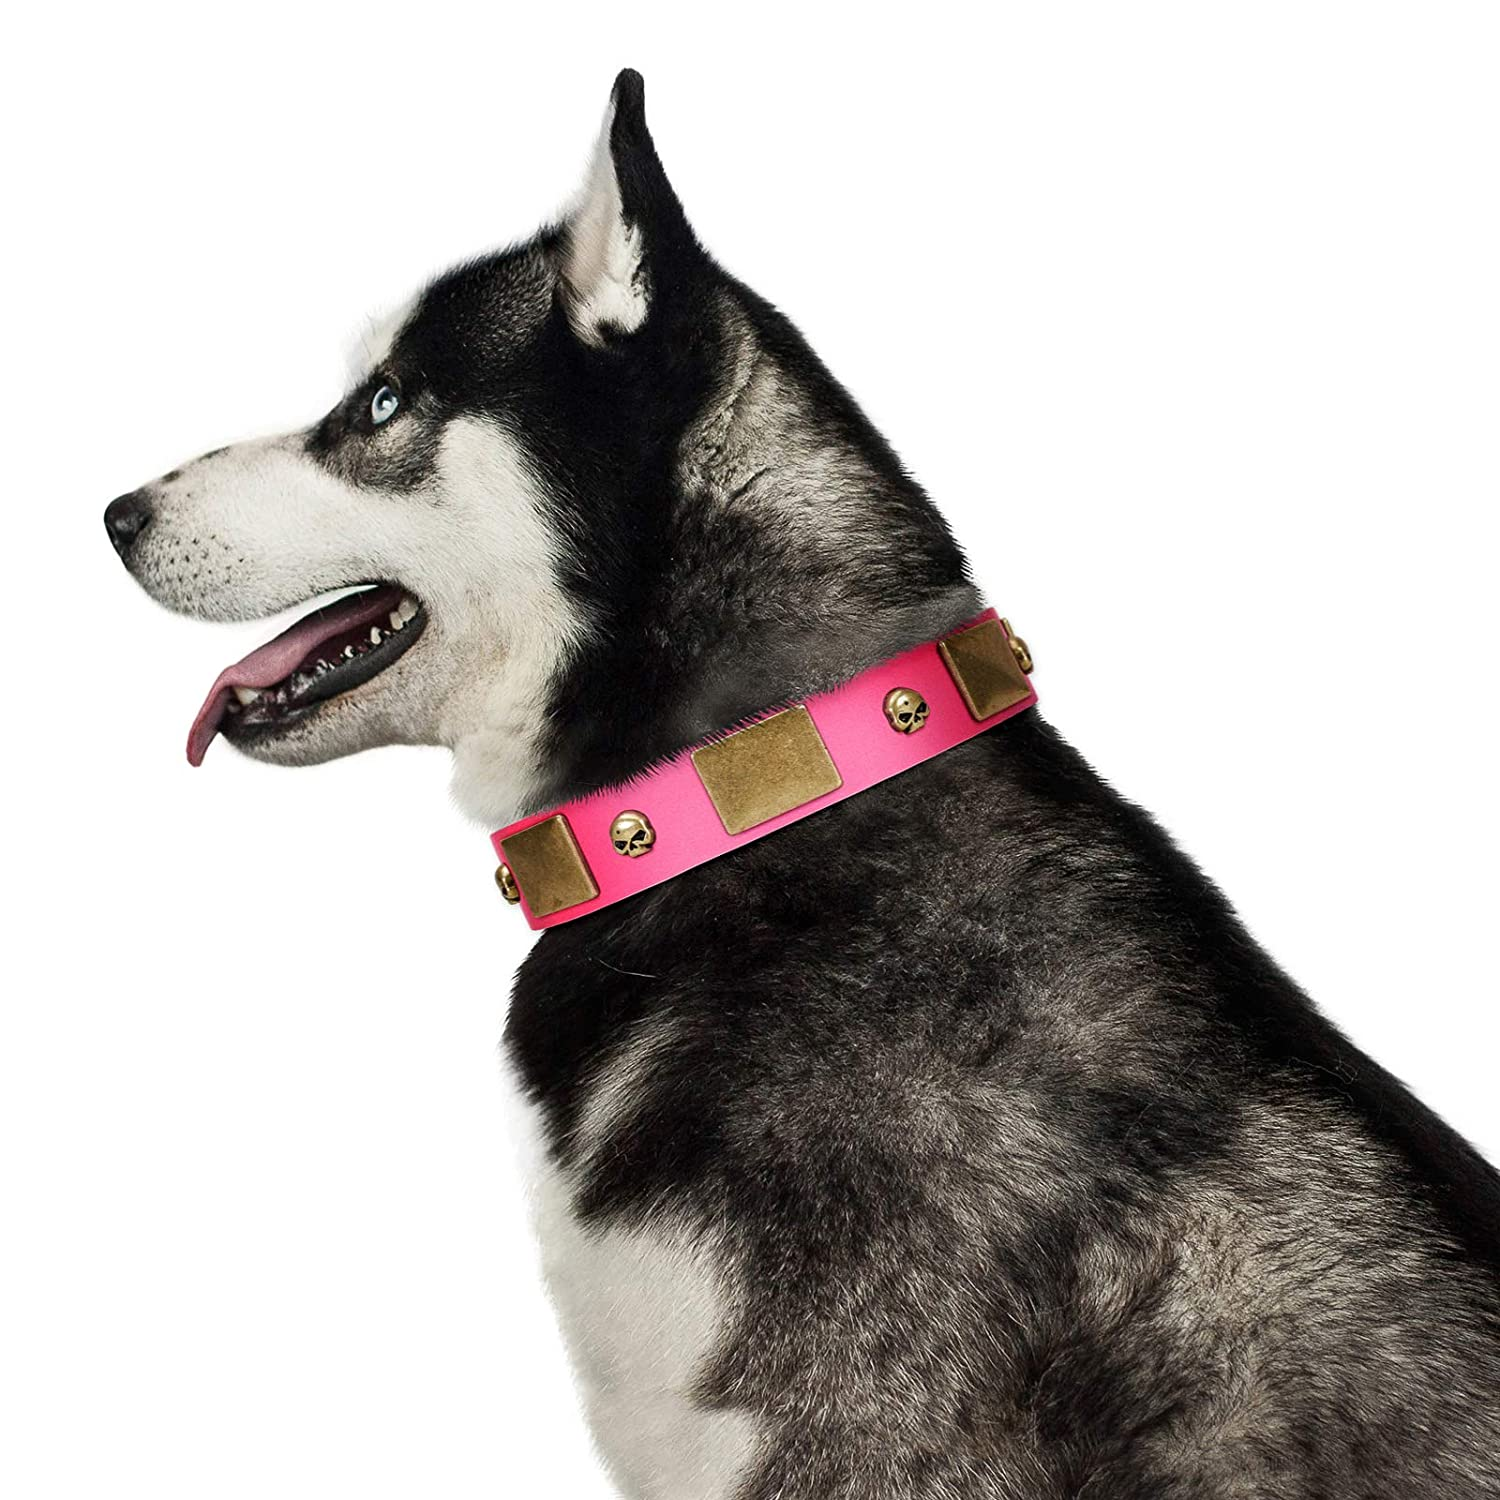 Fits for 23 inch (58cm) dog's neck size FDT Artisan 23 inch Glammy Voyage Pink Leather Dog Collar with Silvery and goldish Decorations Exclusive Handcrafted Item 1 1 2 inch (40 cm) Wide Gift Box Included